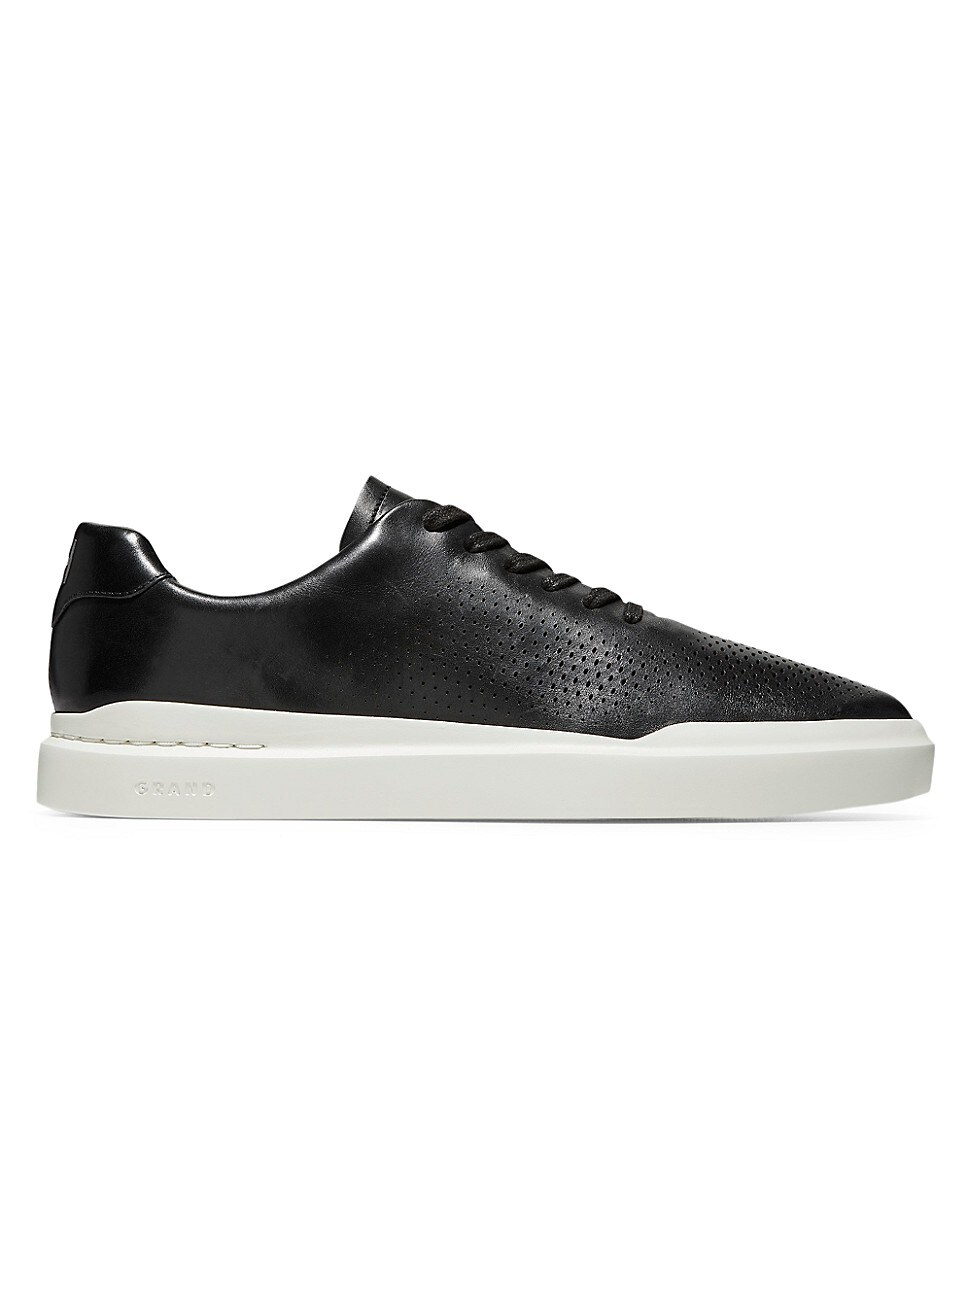 Cole Haan Leathers MEN'S GRAND PRO RALLY LASER CUT SNEAKERS